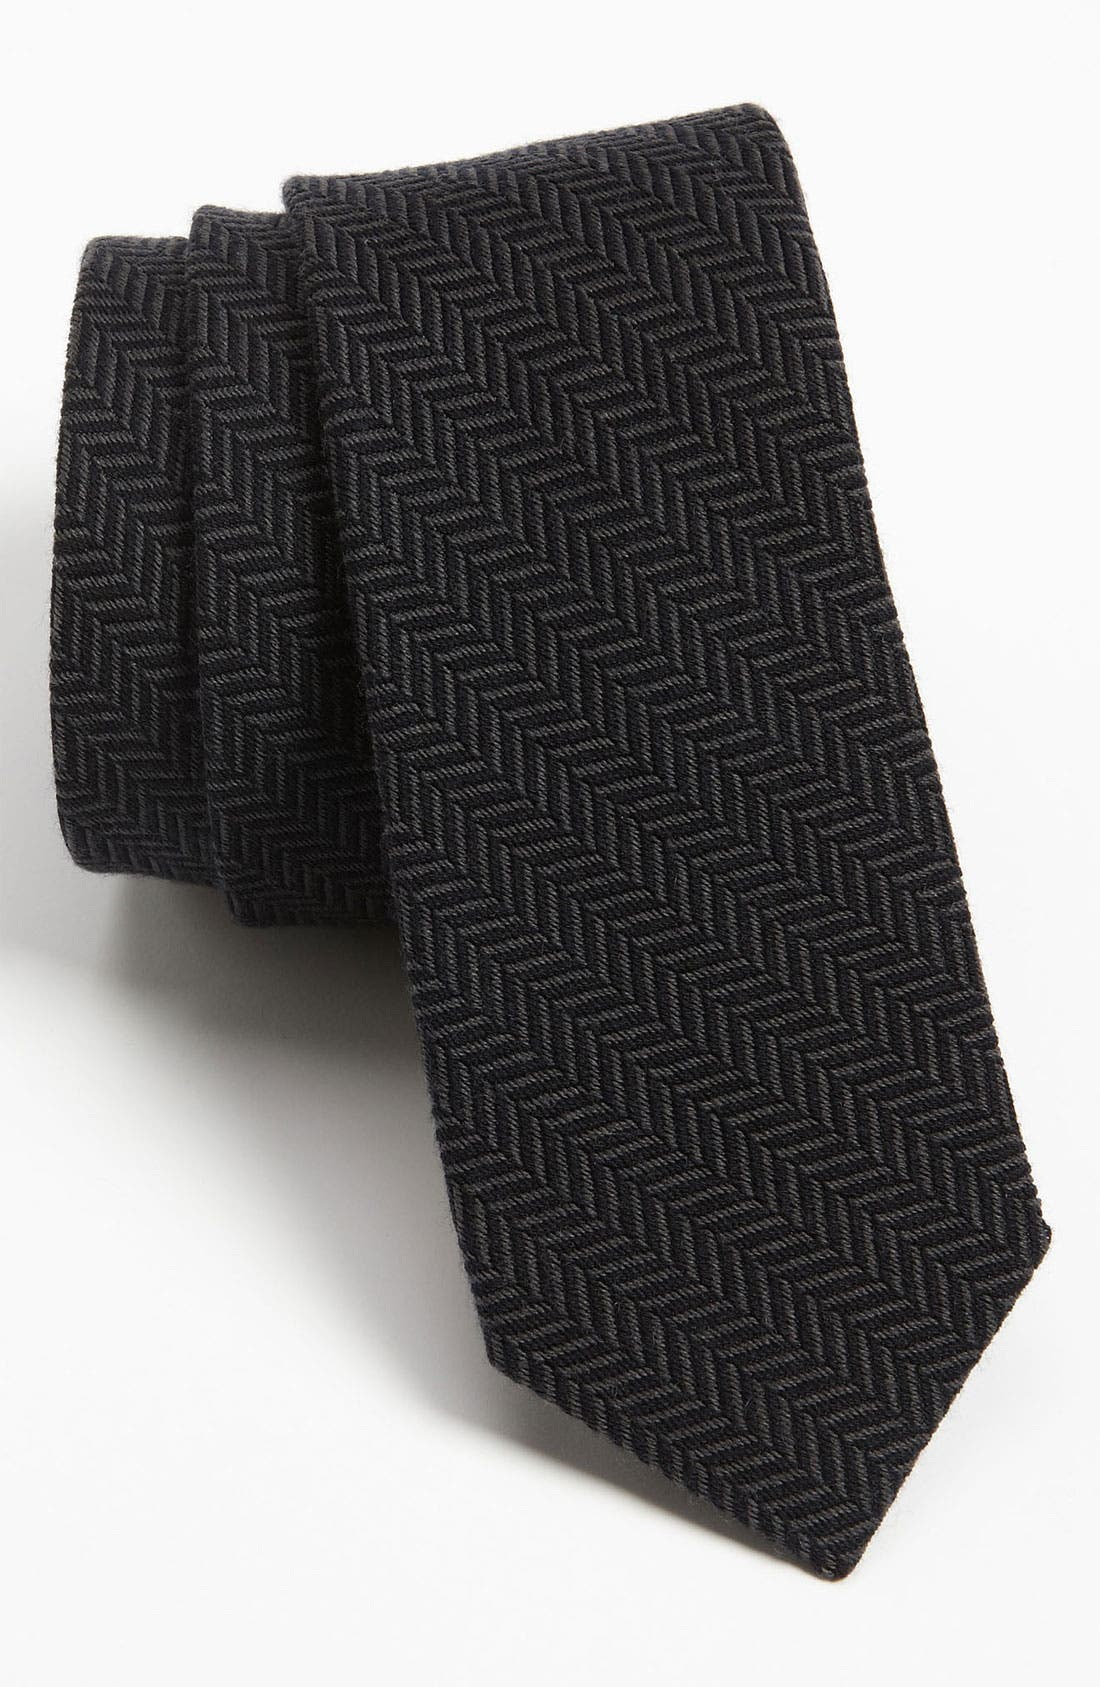 Alternate Image 1 Selected - The Tie Bar Woven Tie